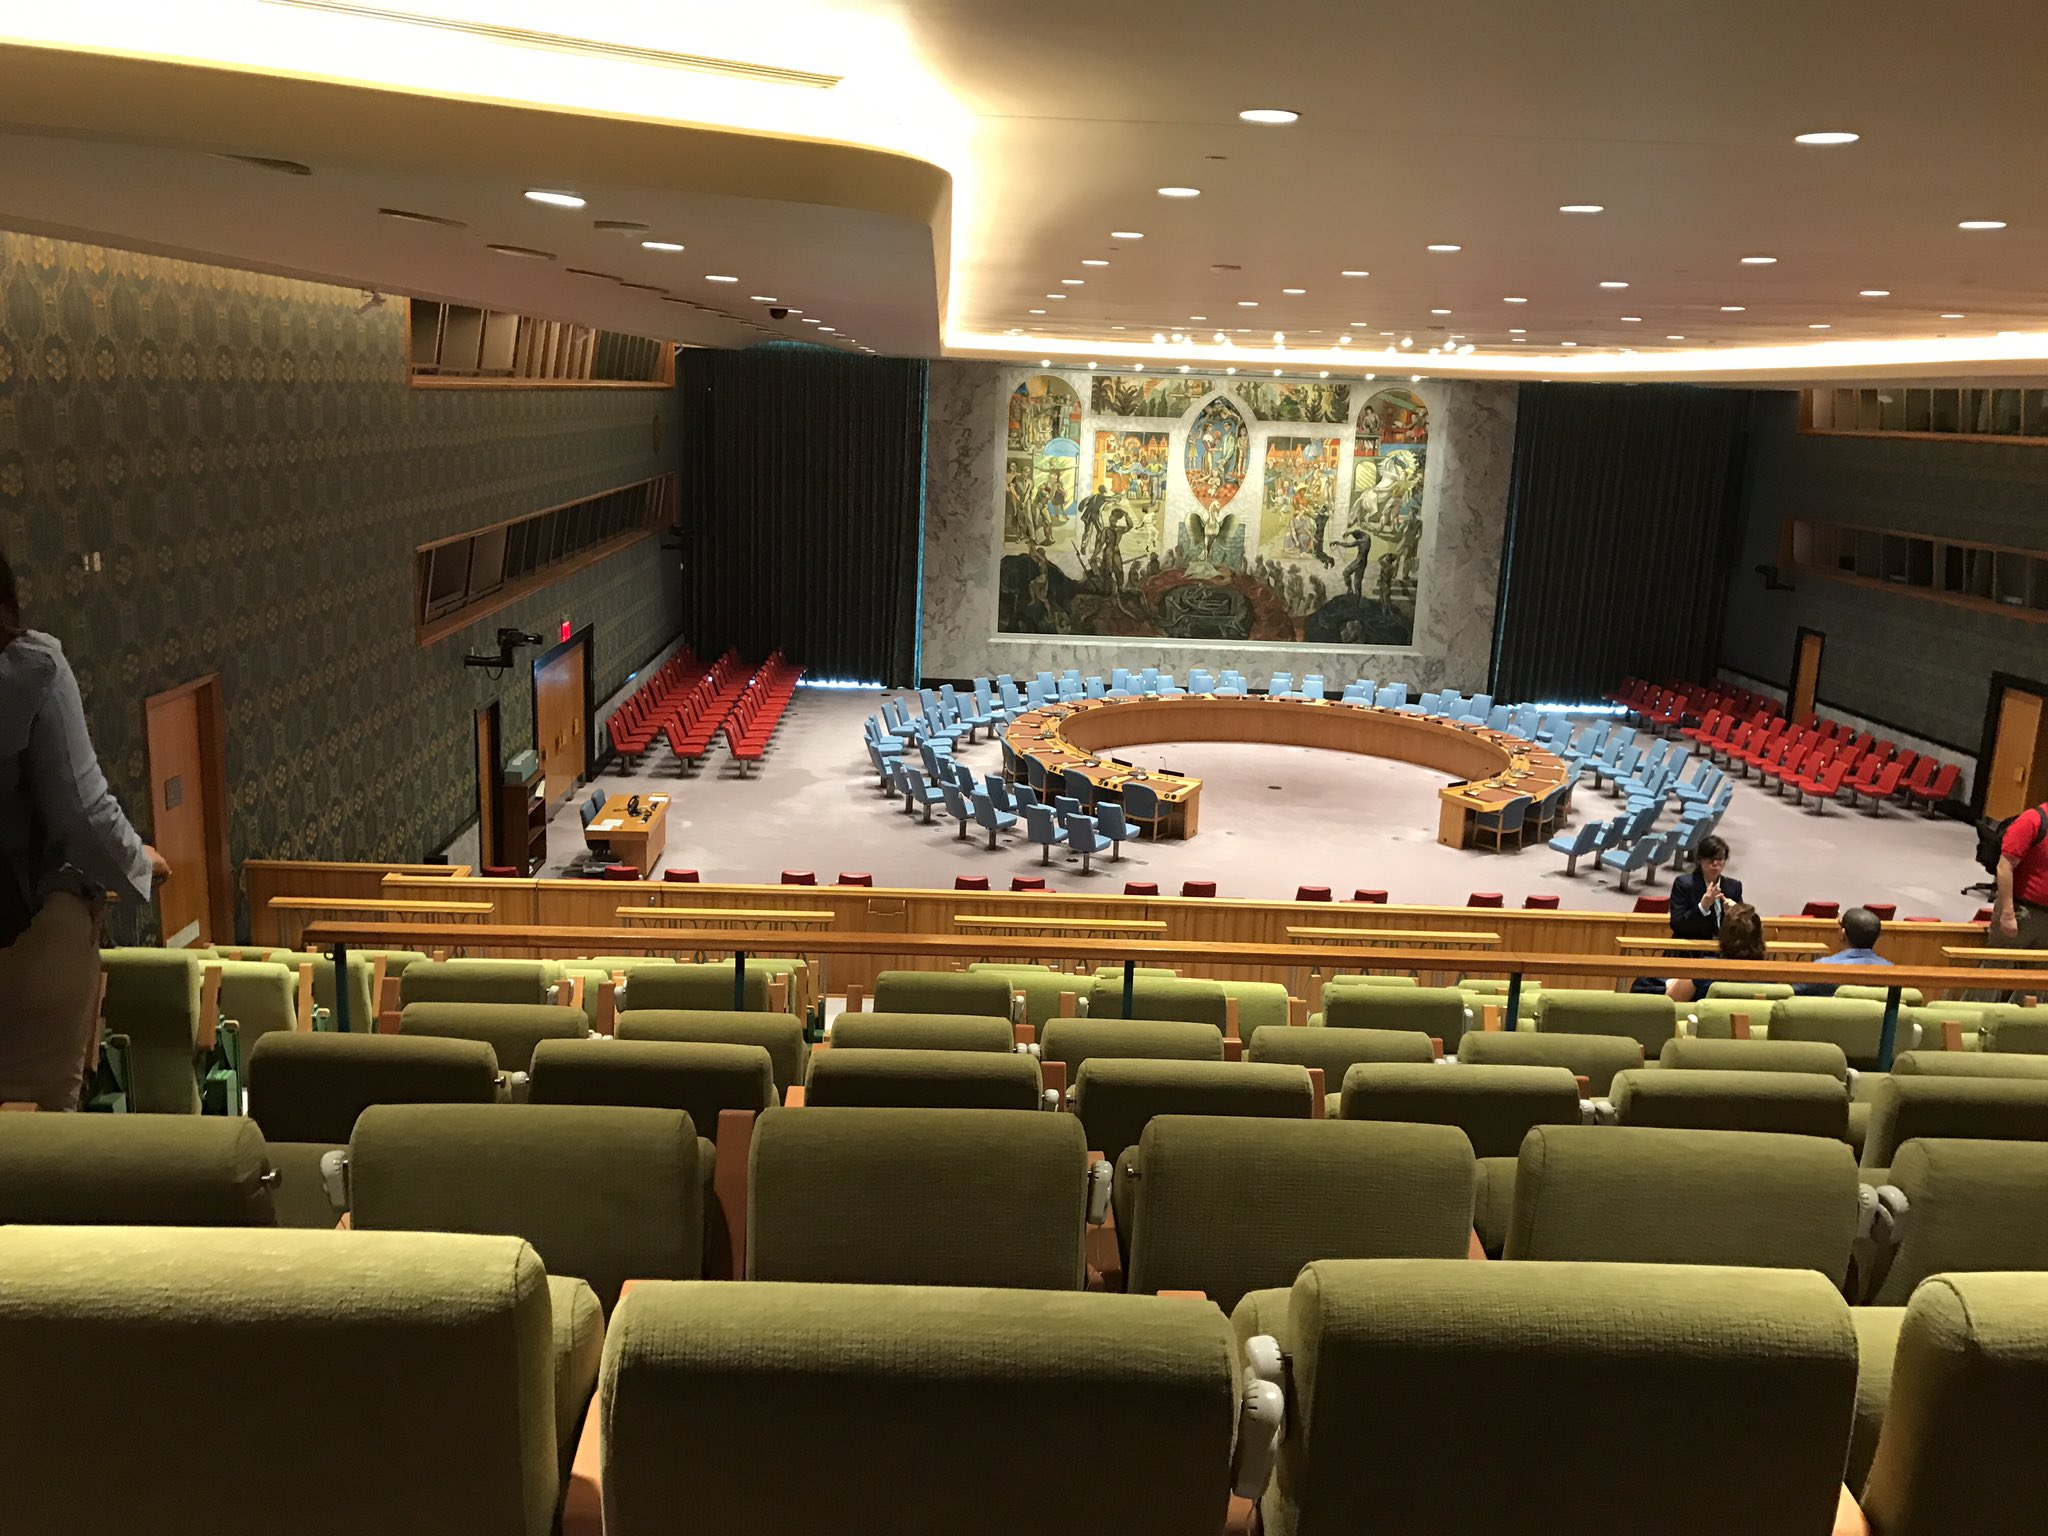 At the United Nations in the Security Council -where ppp meet for emergency meetings (nuclear weapons, Syrian cease fire, Chem weapons, etc) https://t.co/hBeVwnoq38